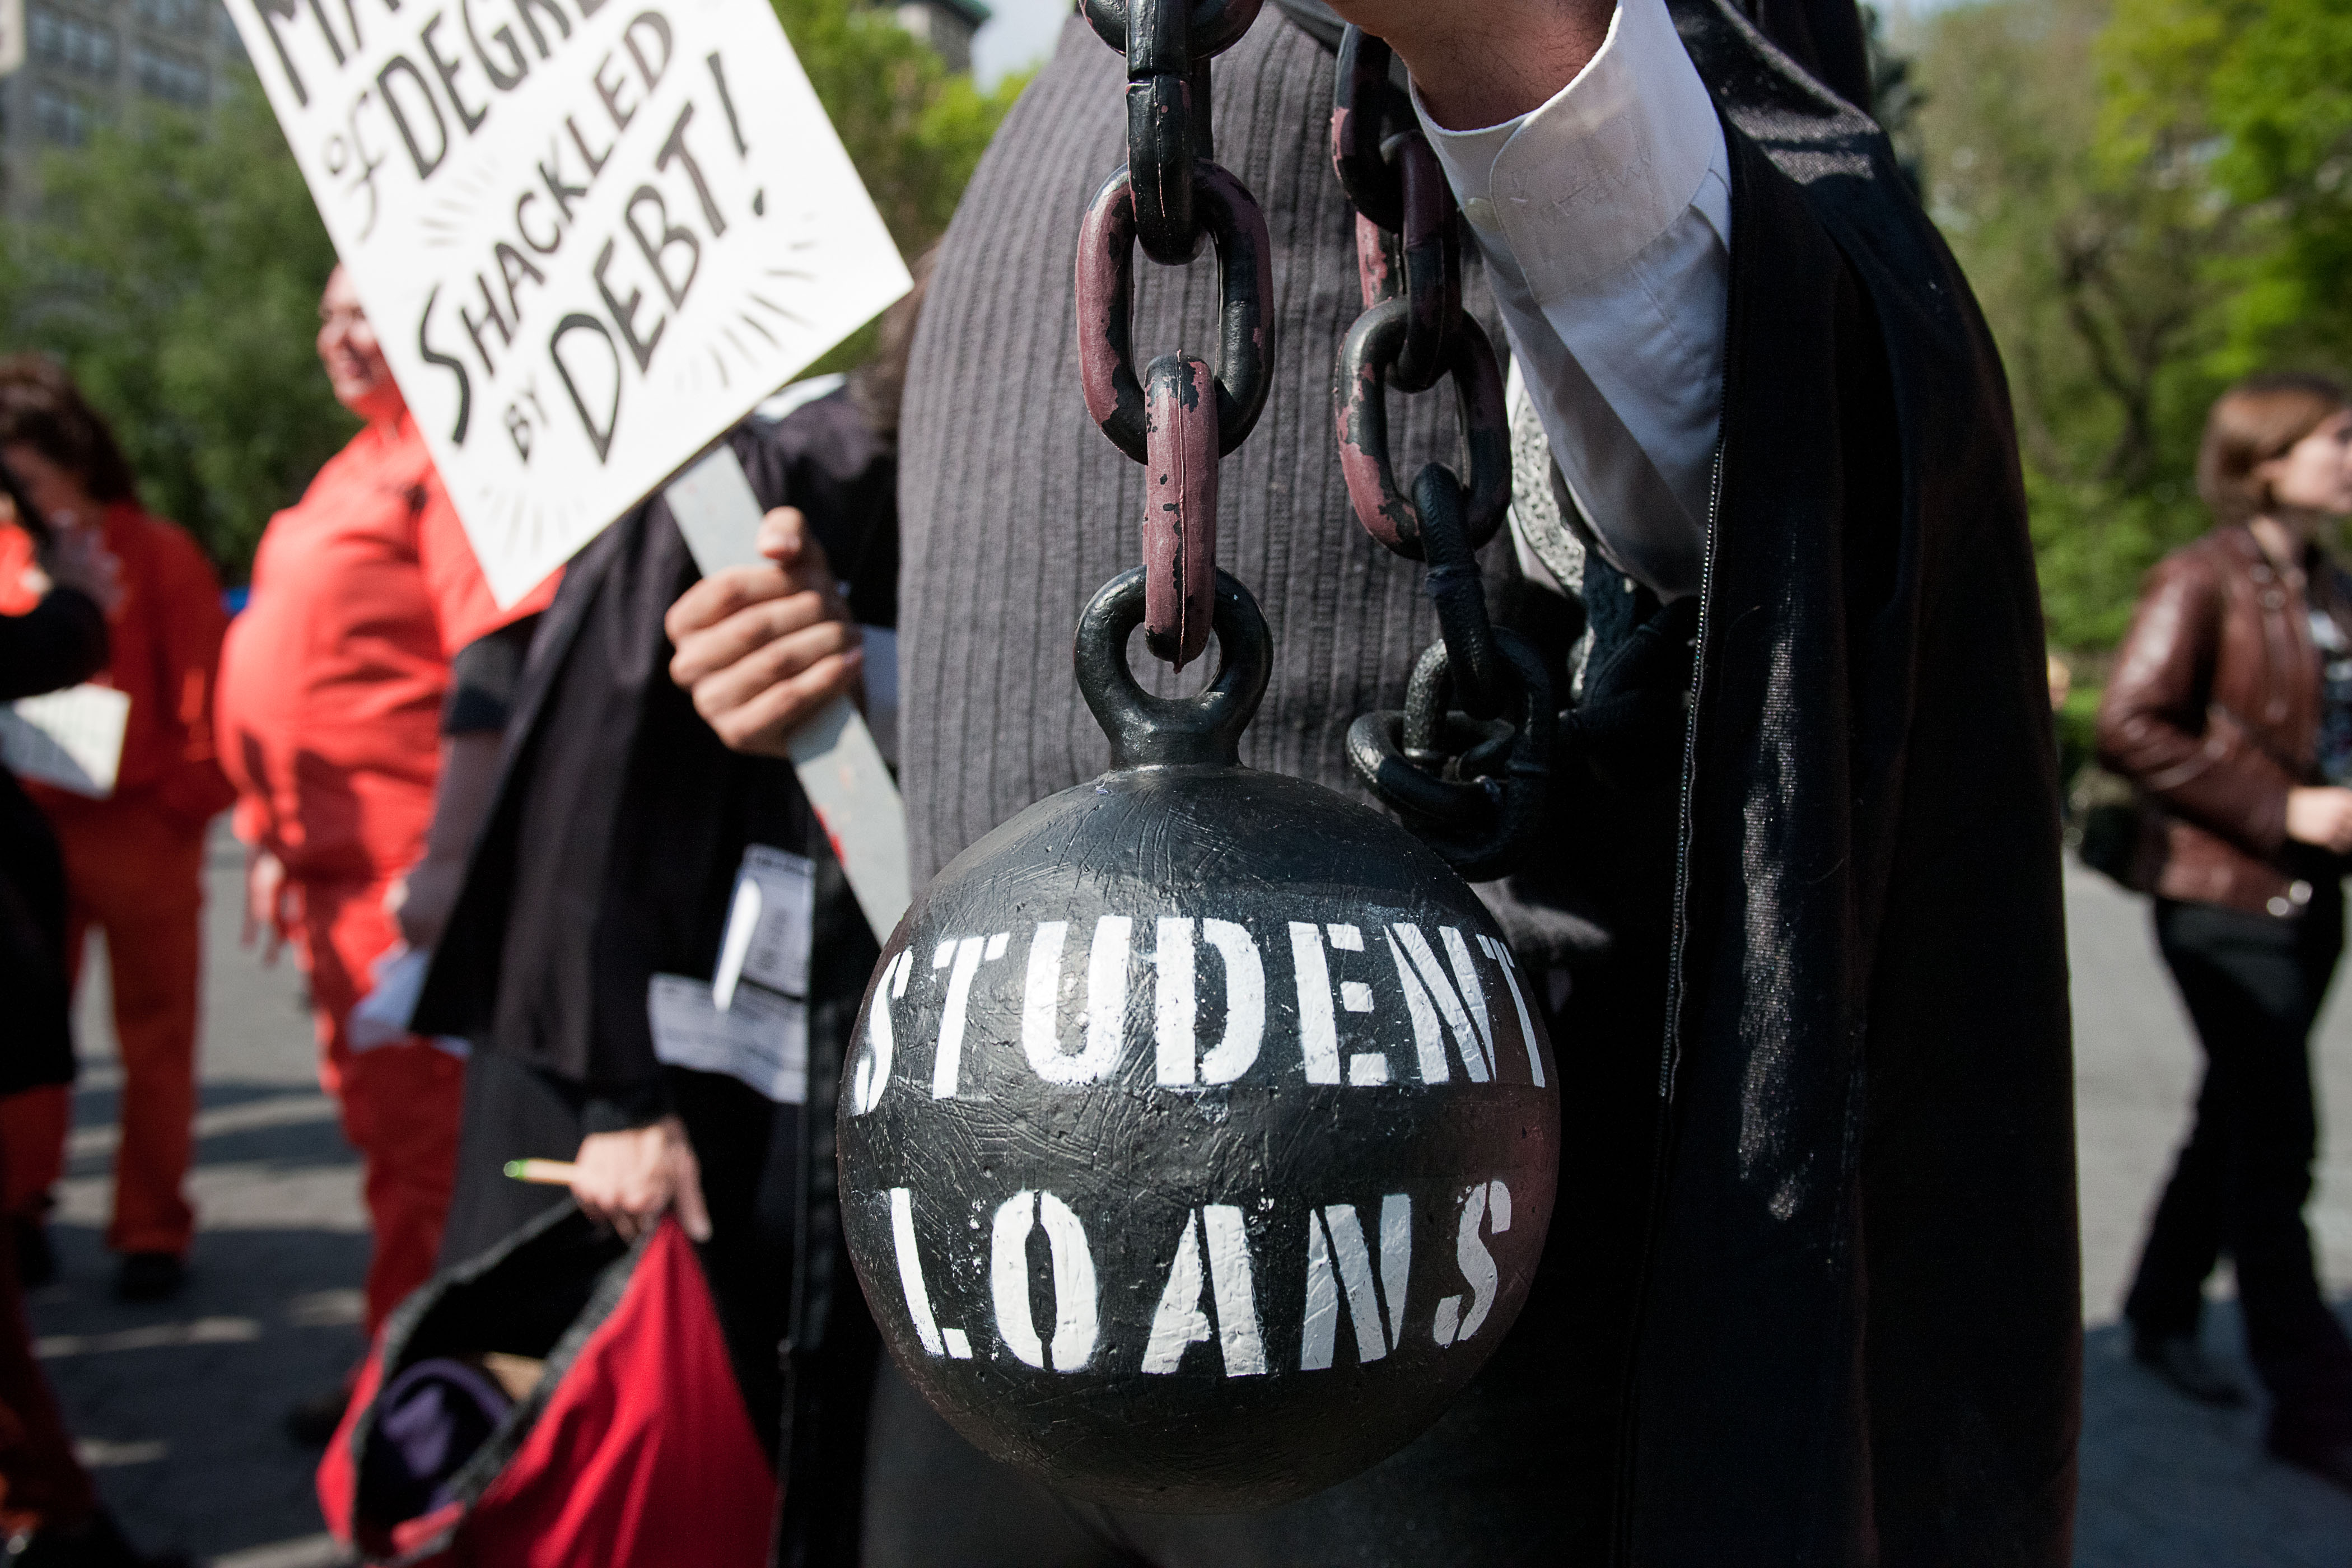 Confronting Education Debt >> How Wall Street Profits From Student Debt Rolling Stone